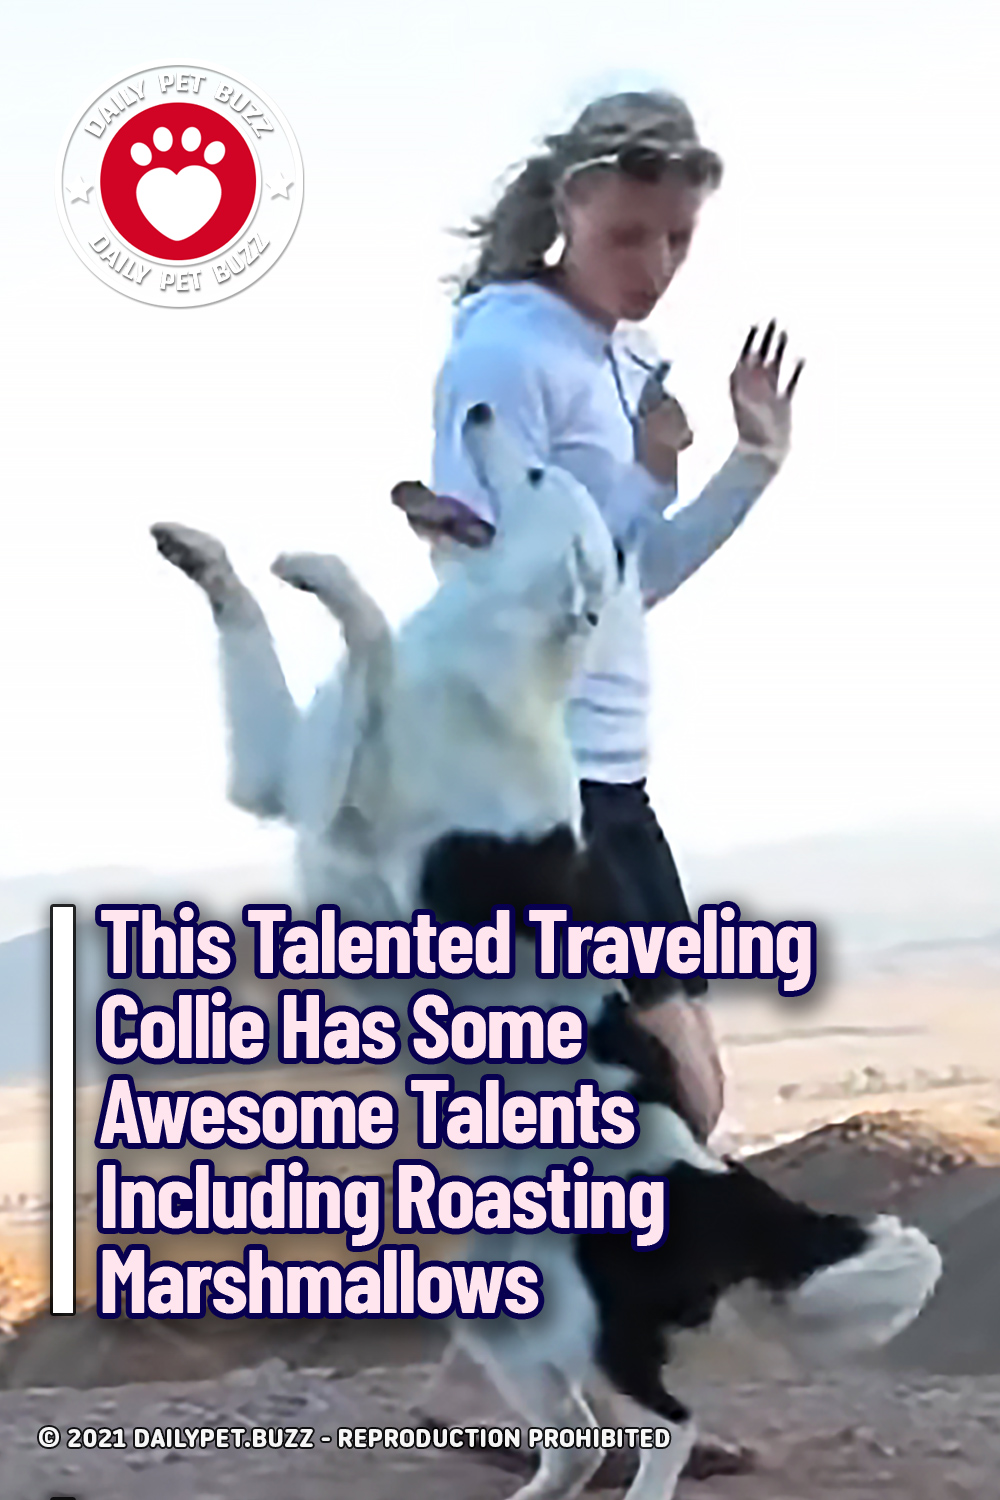 This Talented Traveling Collie Has Some Awesome Talents Including Roasting Marshmallows